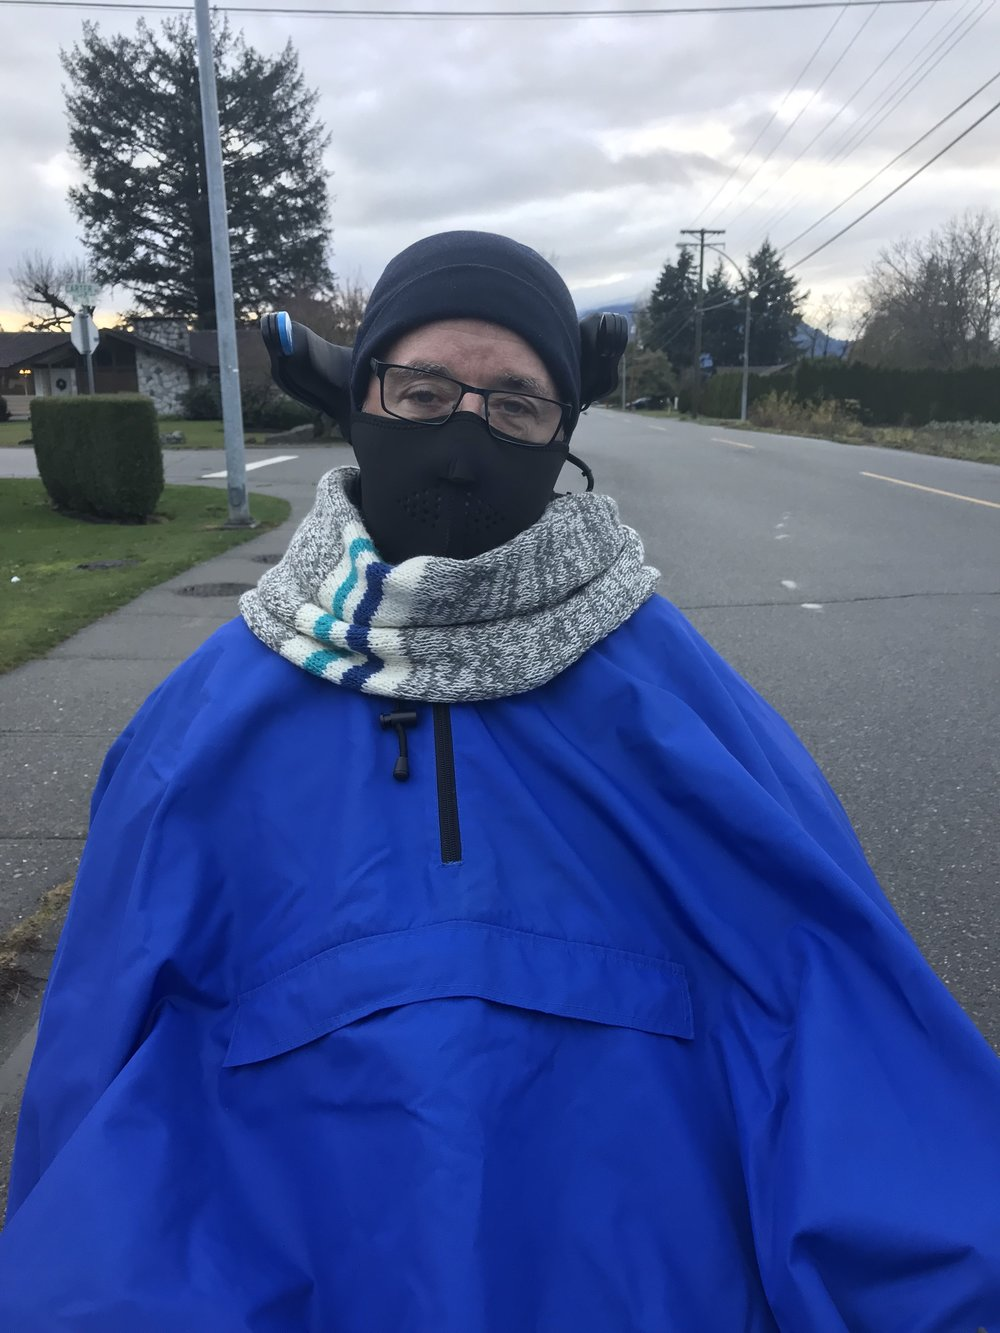 Jim all bundled up for a walk and roll on a brisk day!